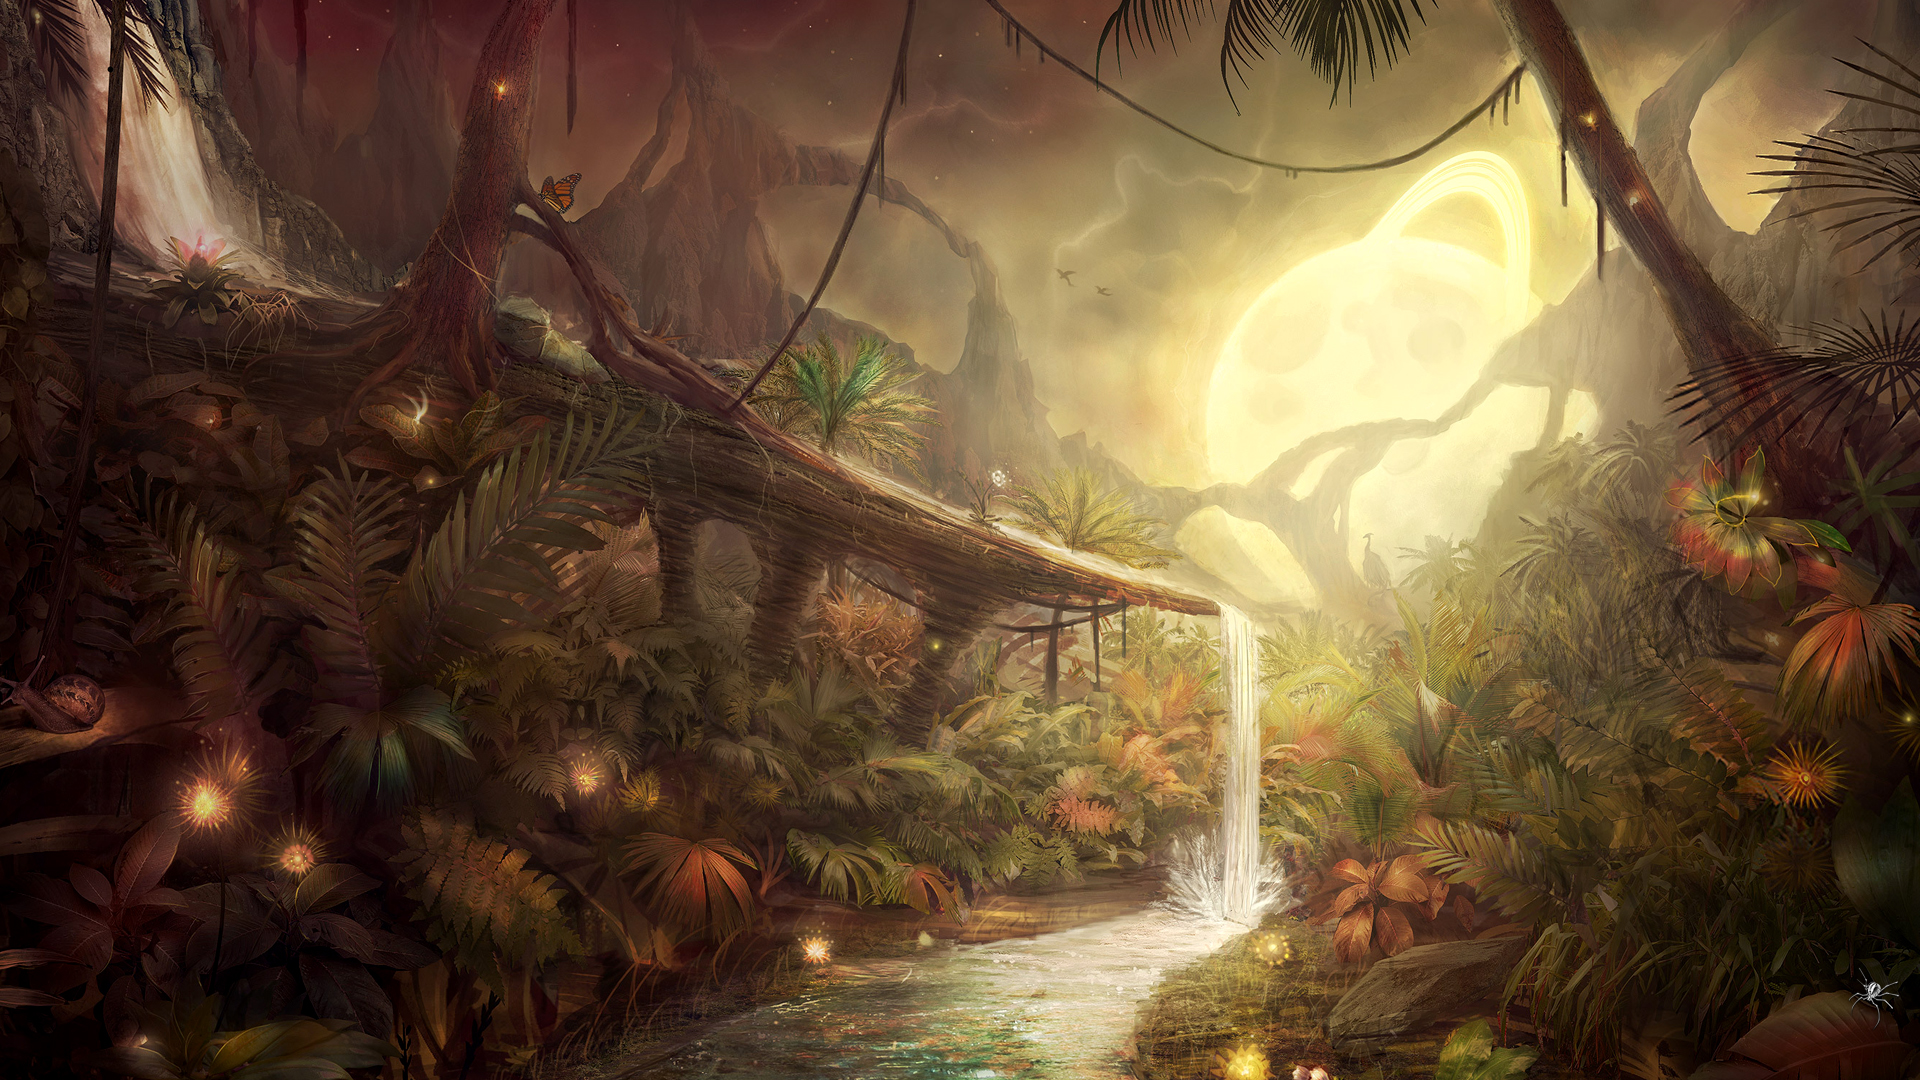 Fantasy Wallpaper Pictures 9 Thumb